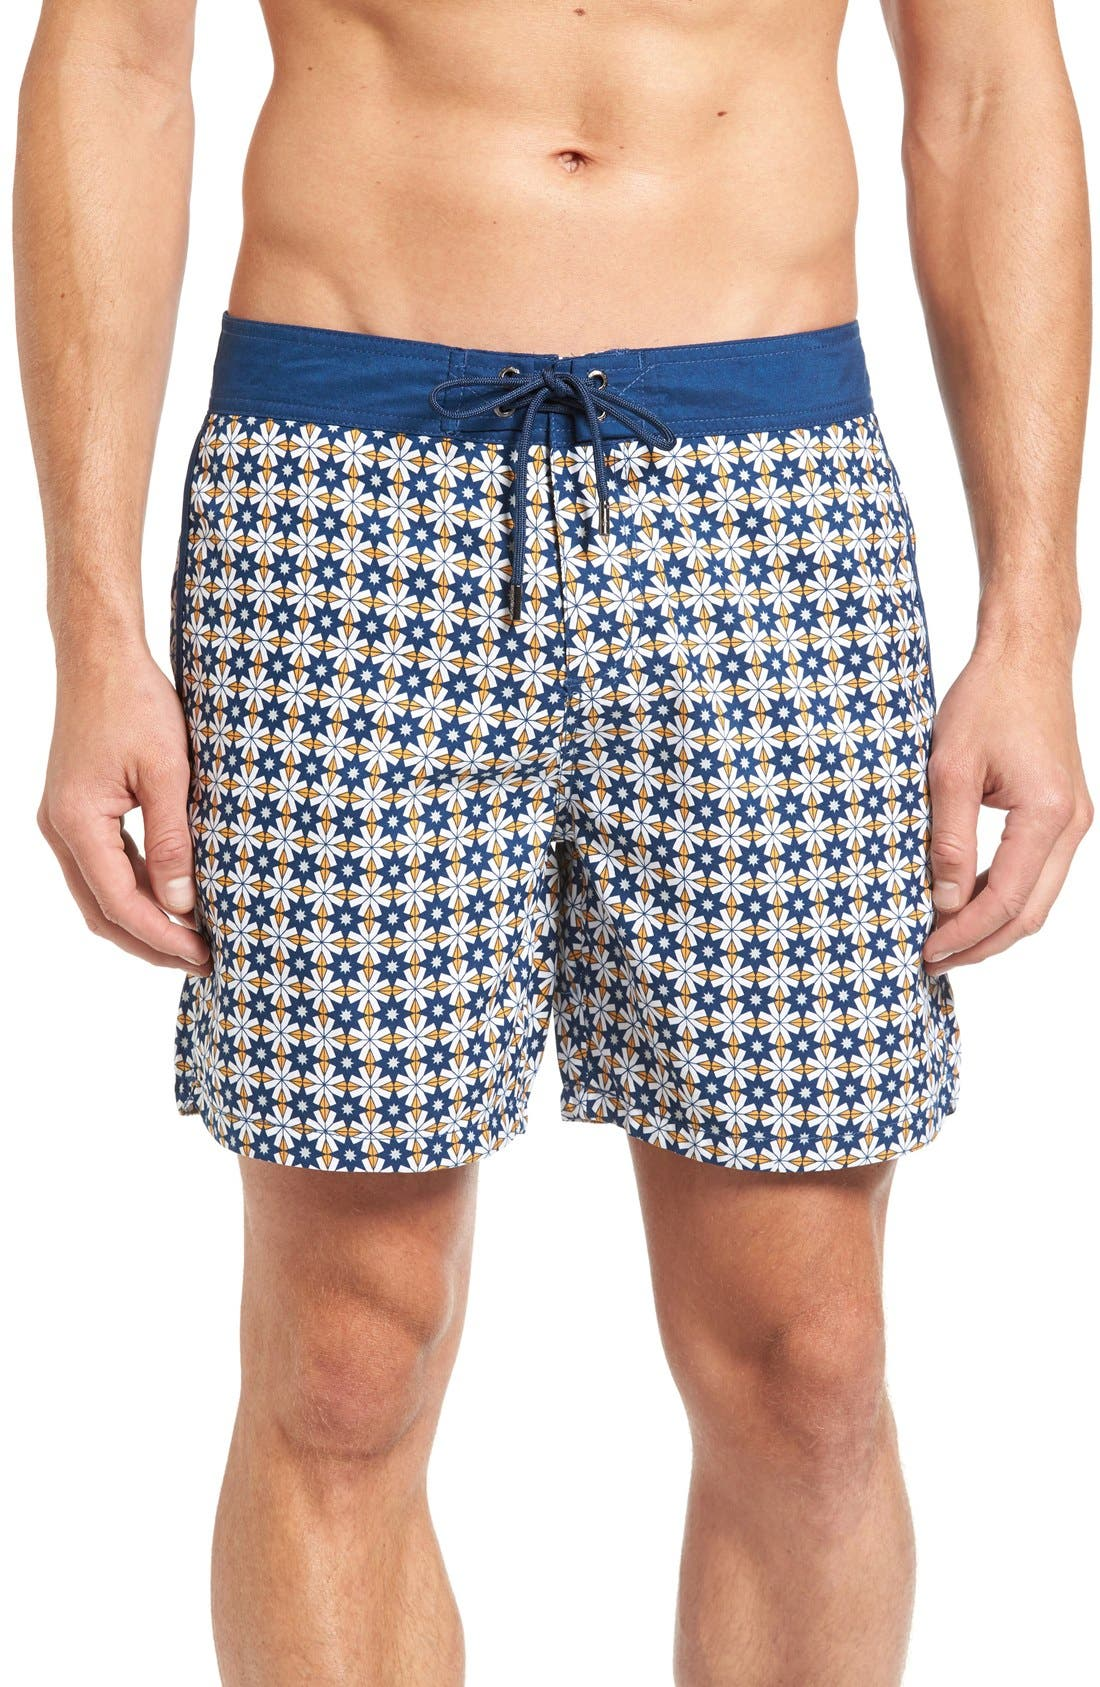 Mr.Swim Star Tile Print Board Shorts